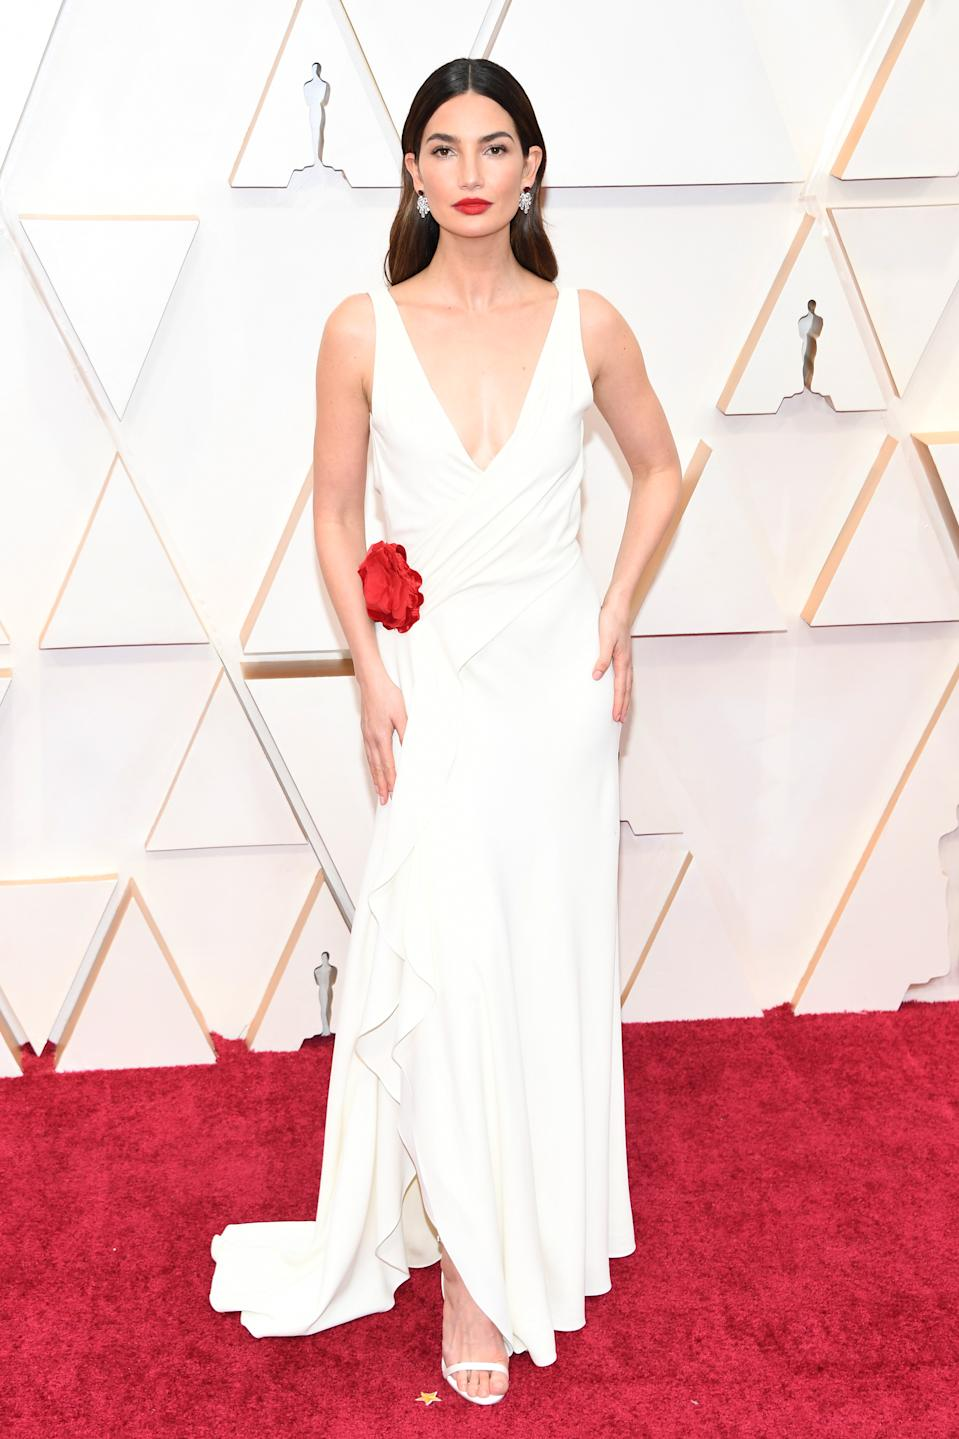 Aldridge looked angelic in a white gown by Ralph Lauren that featured a pop of colour in a red silk rosette at the hip. The model completed the look with diamond and ruby earrings and a bold red lip.